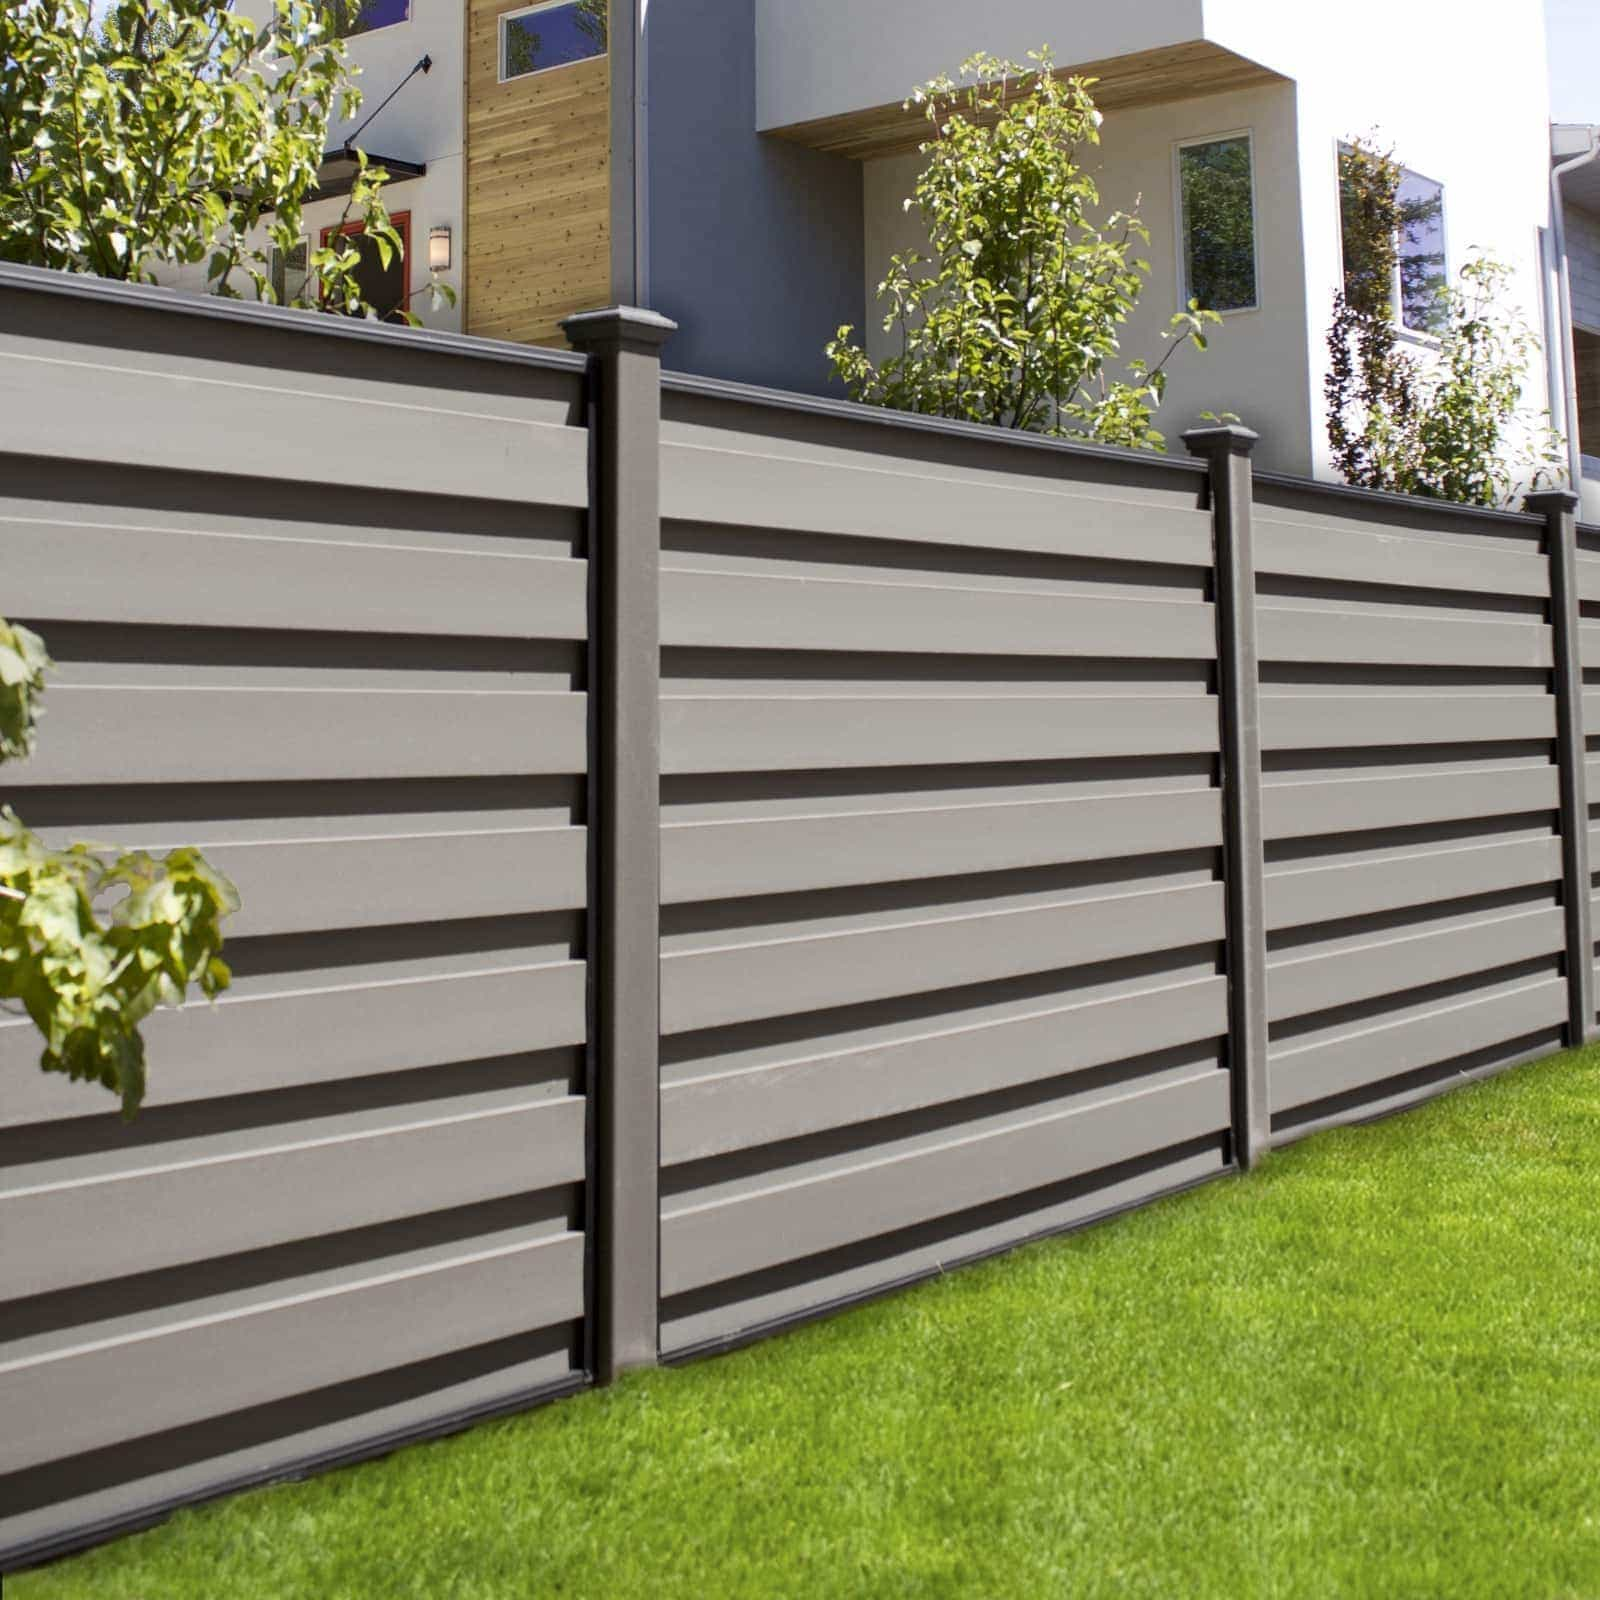 A P Fencing Quality Fence Panels Accessories West Midlands